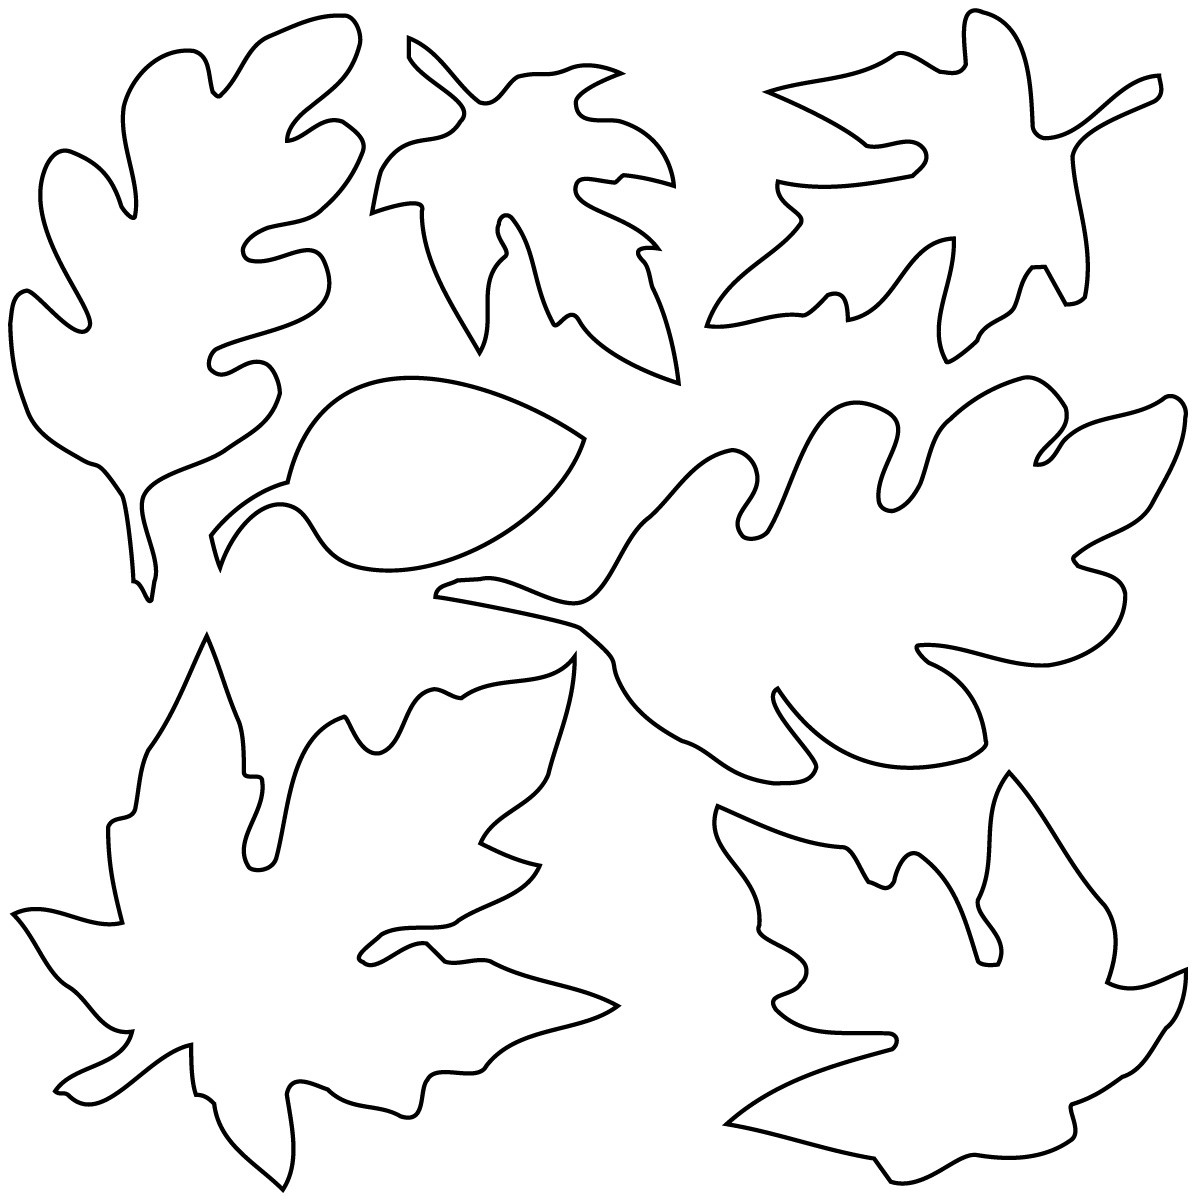 Free Leaves Clip Art, Download Free Clip Art, Free Clip Art ... banner black and white download